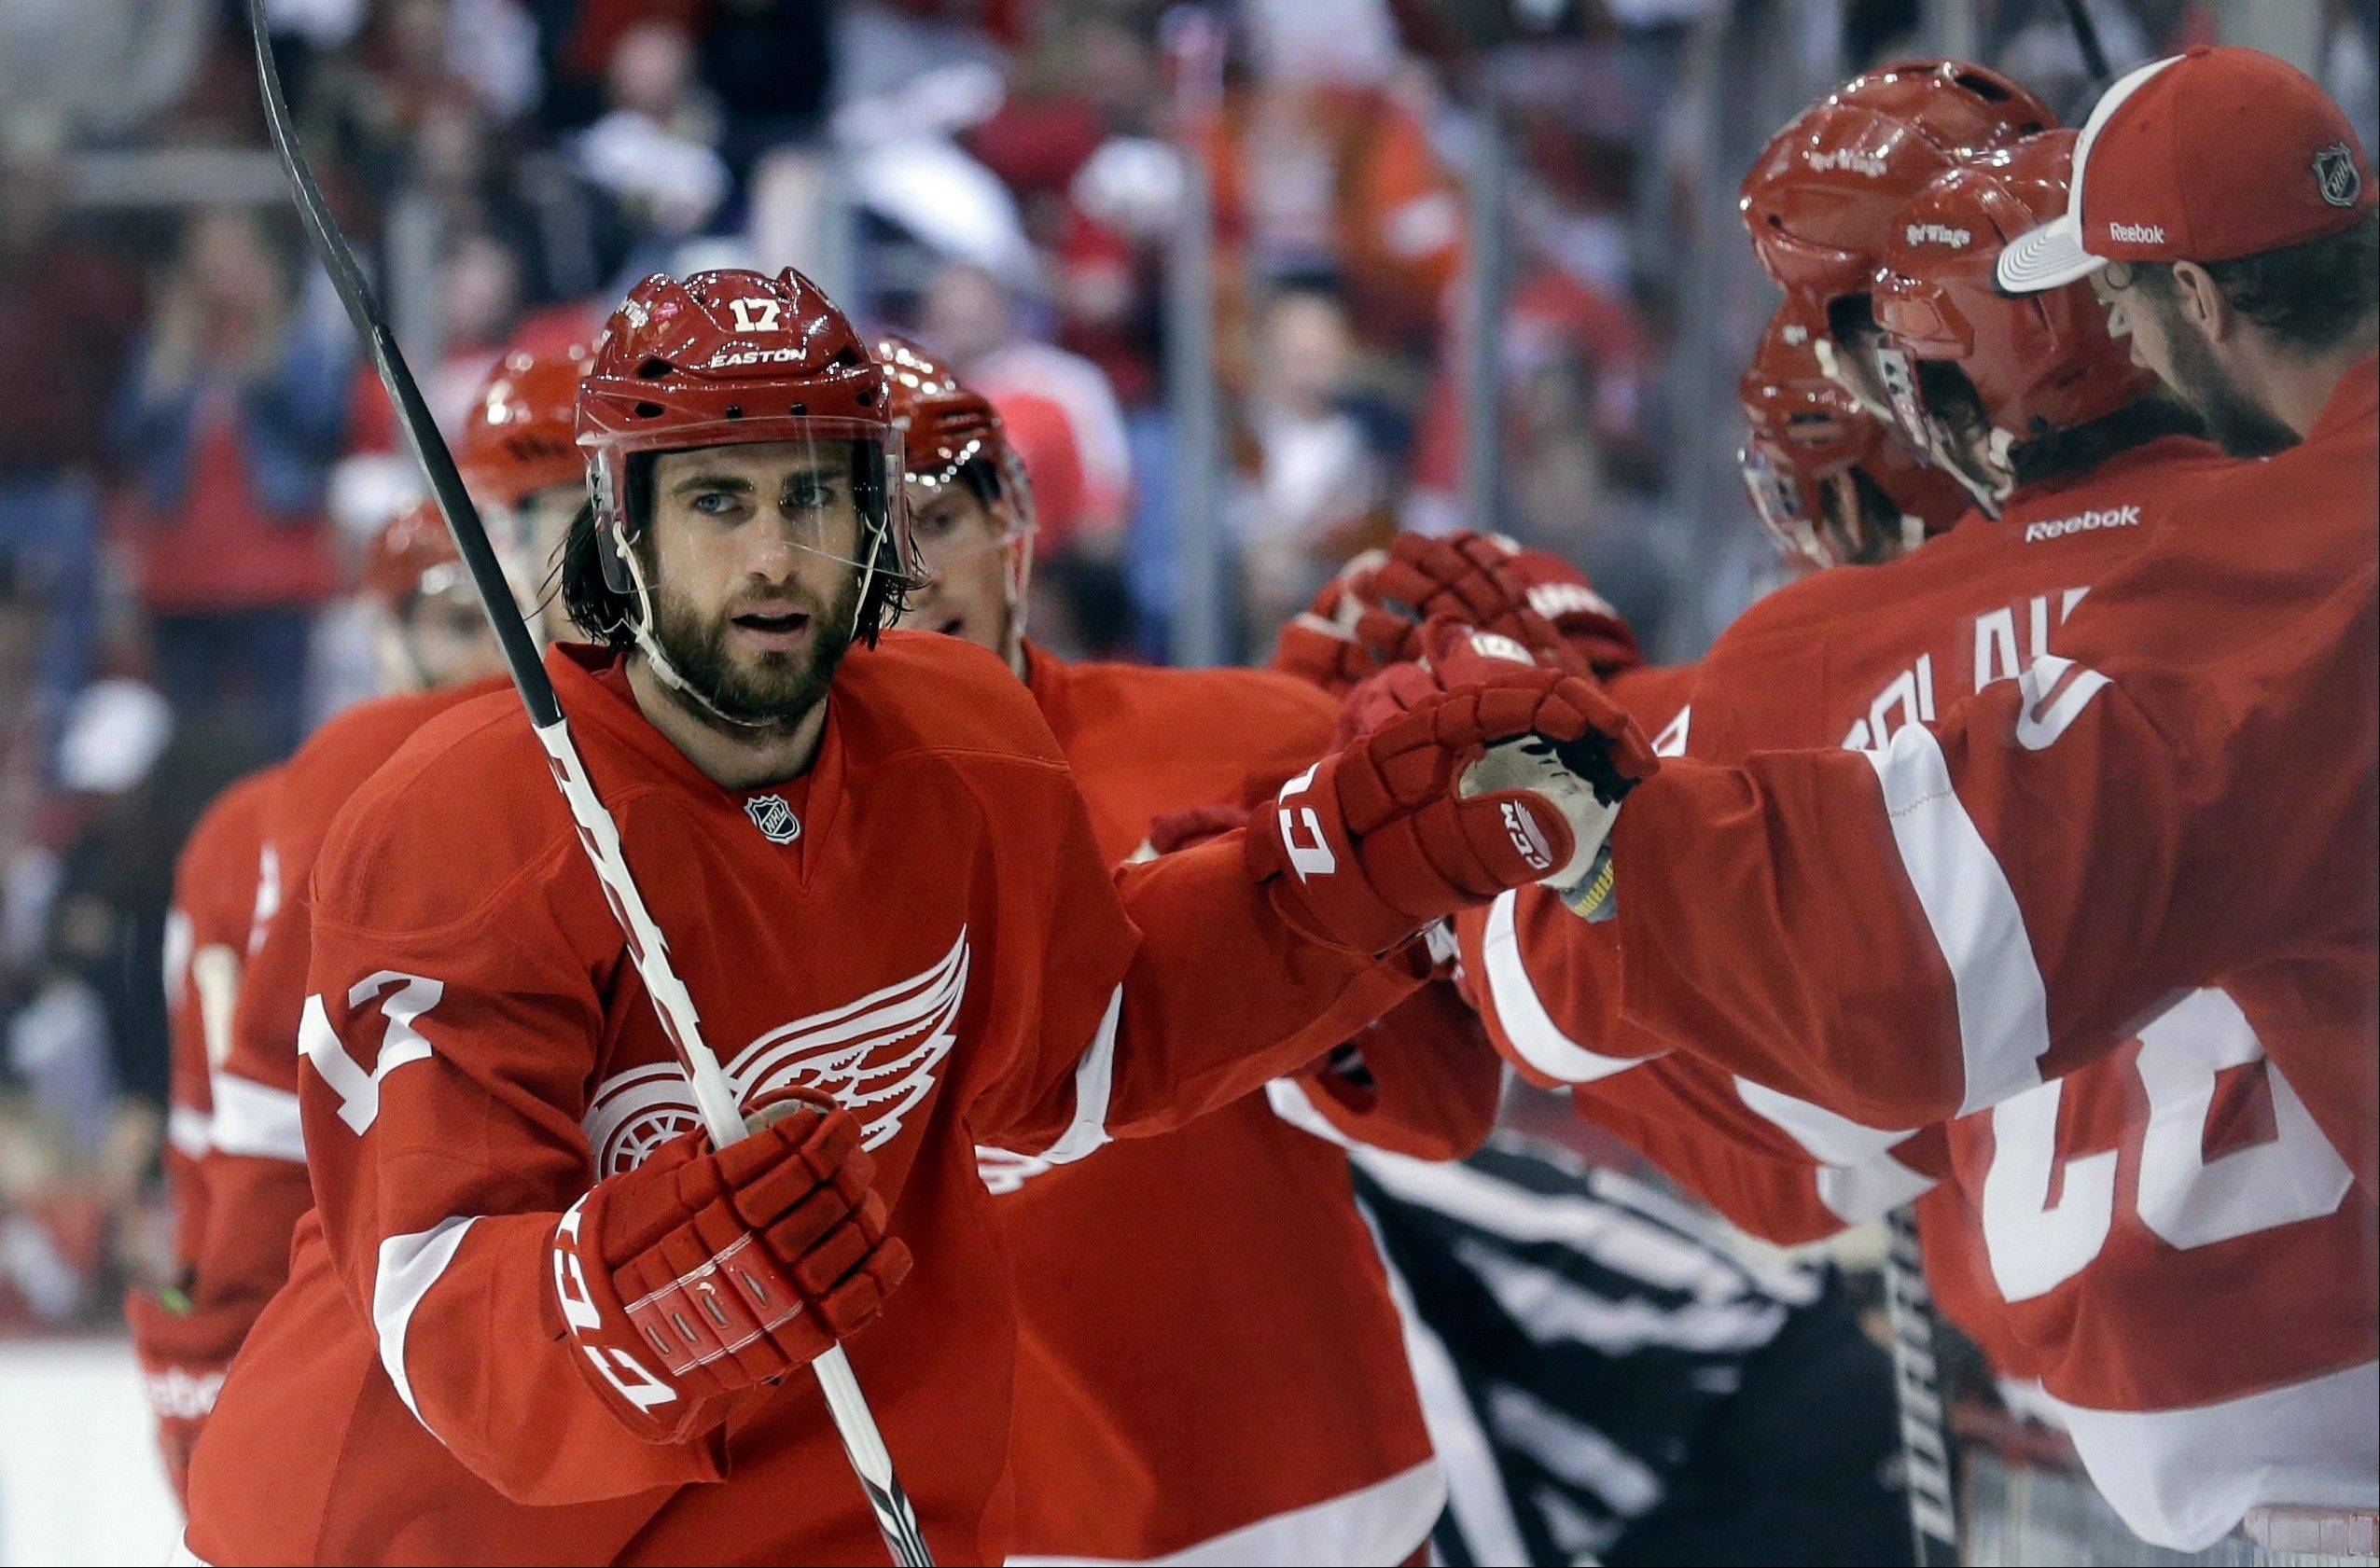 Detroit Red Wings right wing Patrick Eaves (17) celebrates scoring a goal against the Chicago Blackhawks during the first period in Game 6 of the Western Conference semifinals in the NHL hockey Stanley Cup playoffs in Detroit, Monday, May 27, 2013.